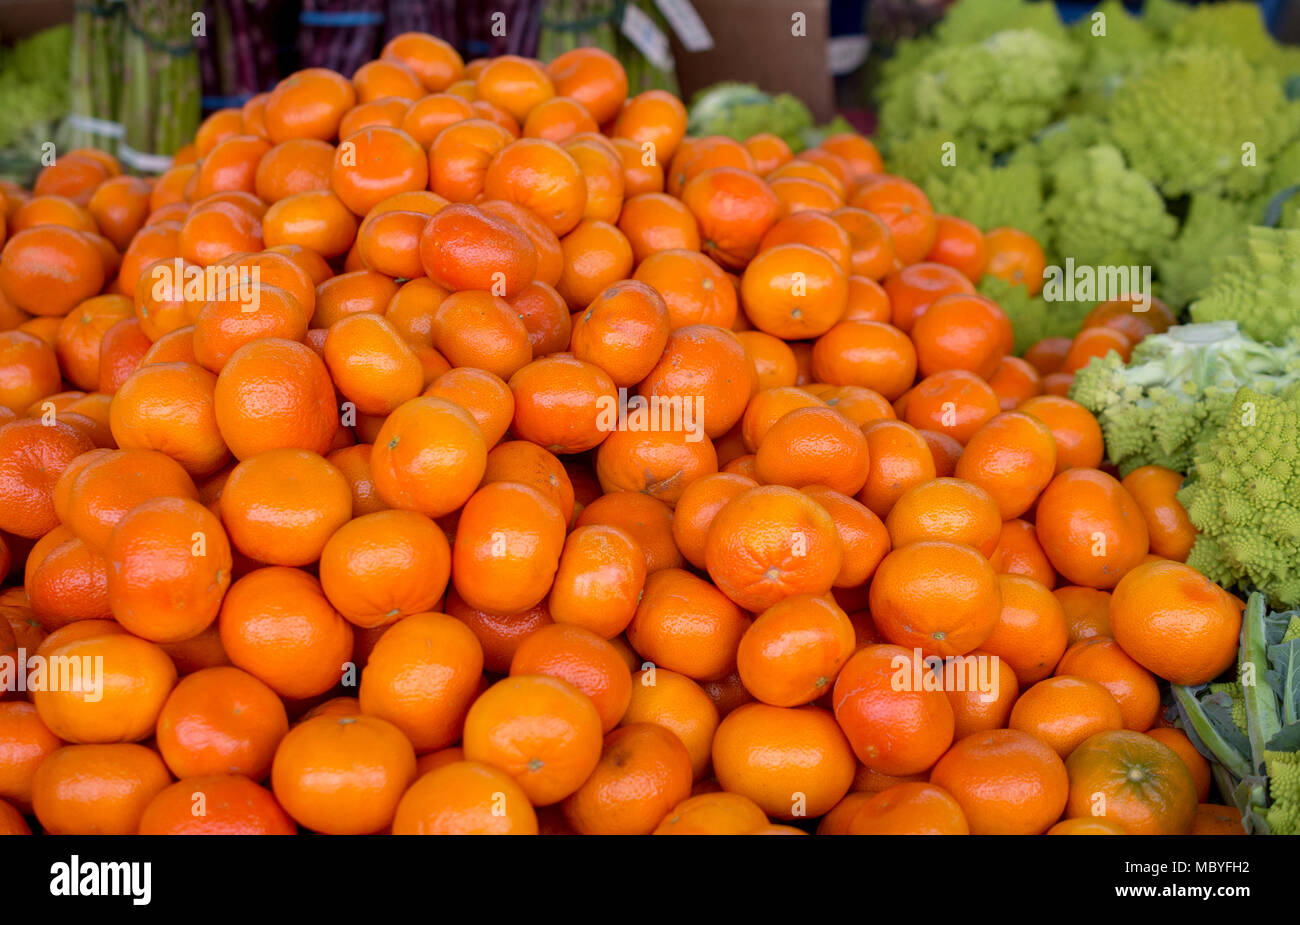 Orange Color Tangerine Citrus Available At A Farmers Market For Sale Surrounded By Vegetables